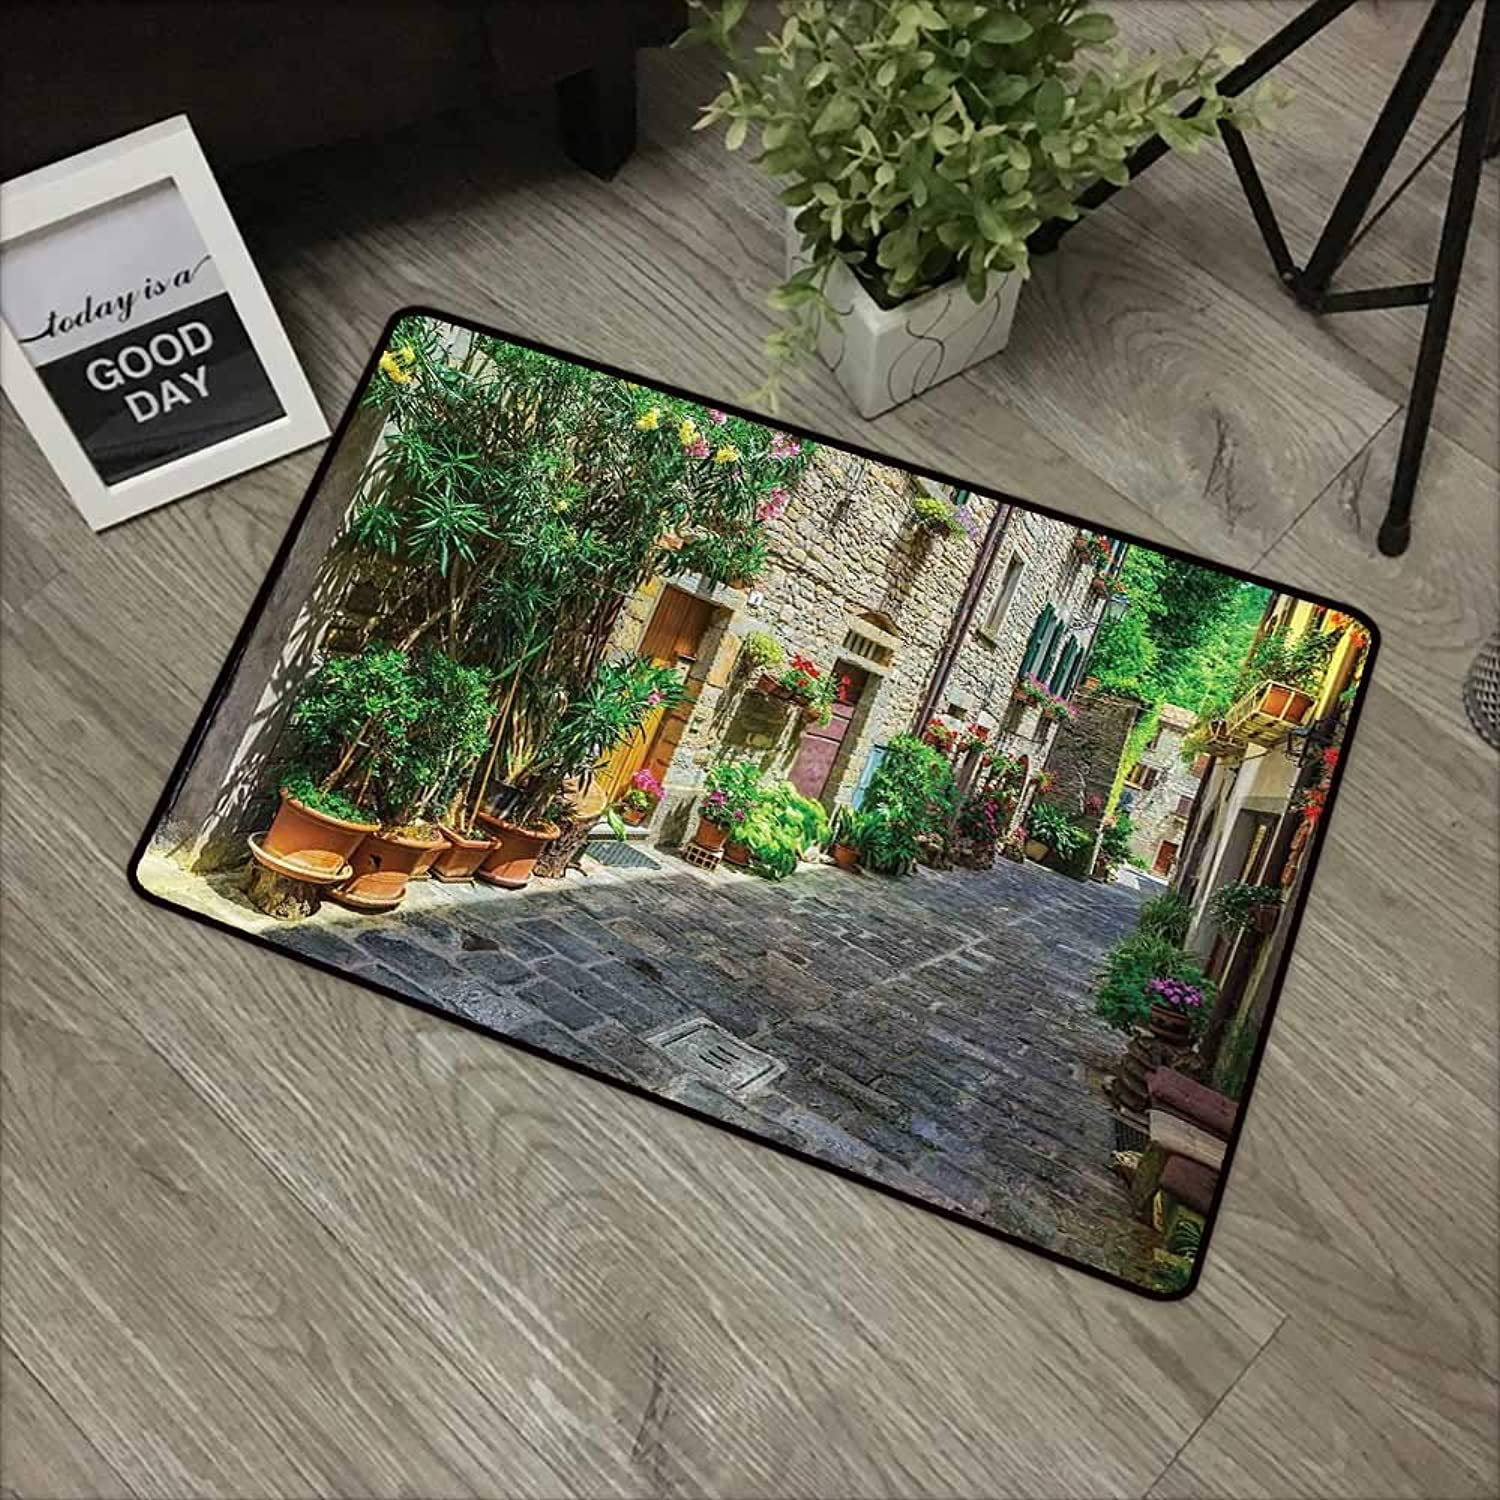 Restaurant mat W35 x L59 INCH Tuscan,Doorway to Tuscan House Build with Cobblestone with Many Flowering Plants,Green Beige Grey Non-Slip, with Non-Slip Backing,Non-Slip Door Mat Carpet